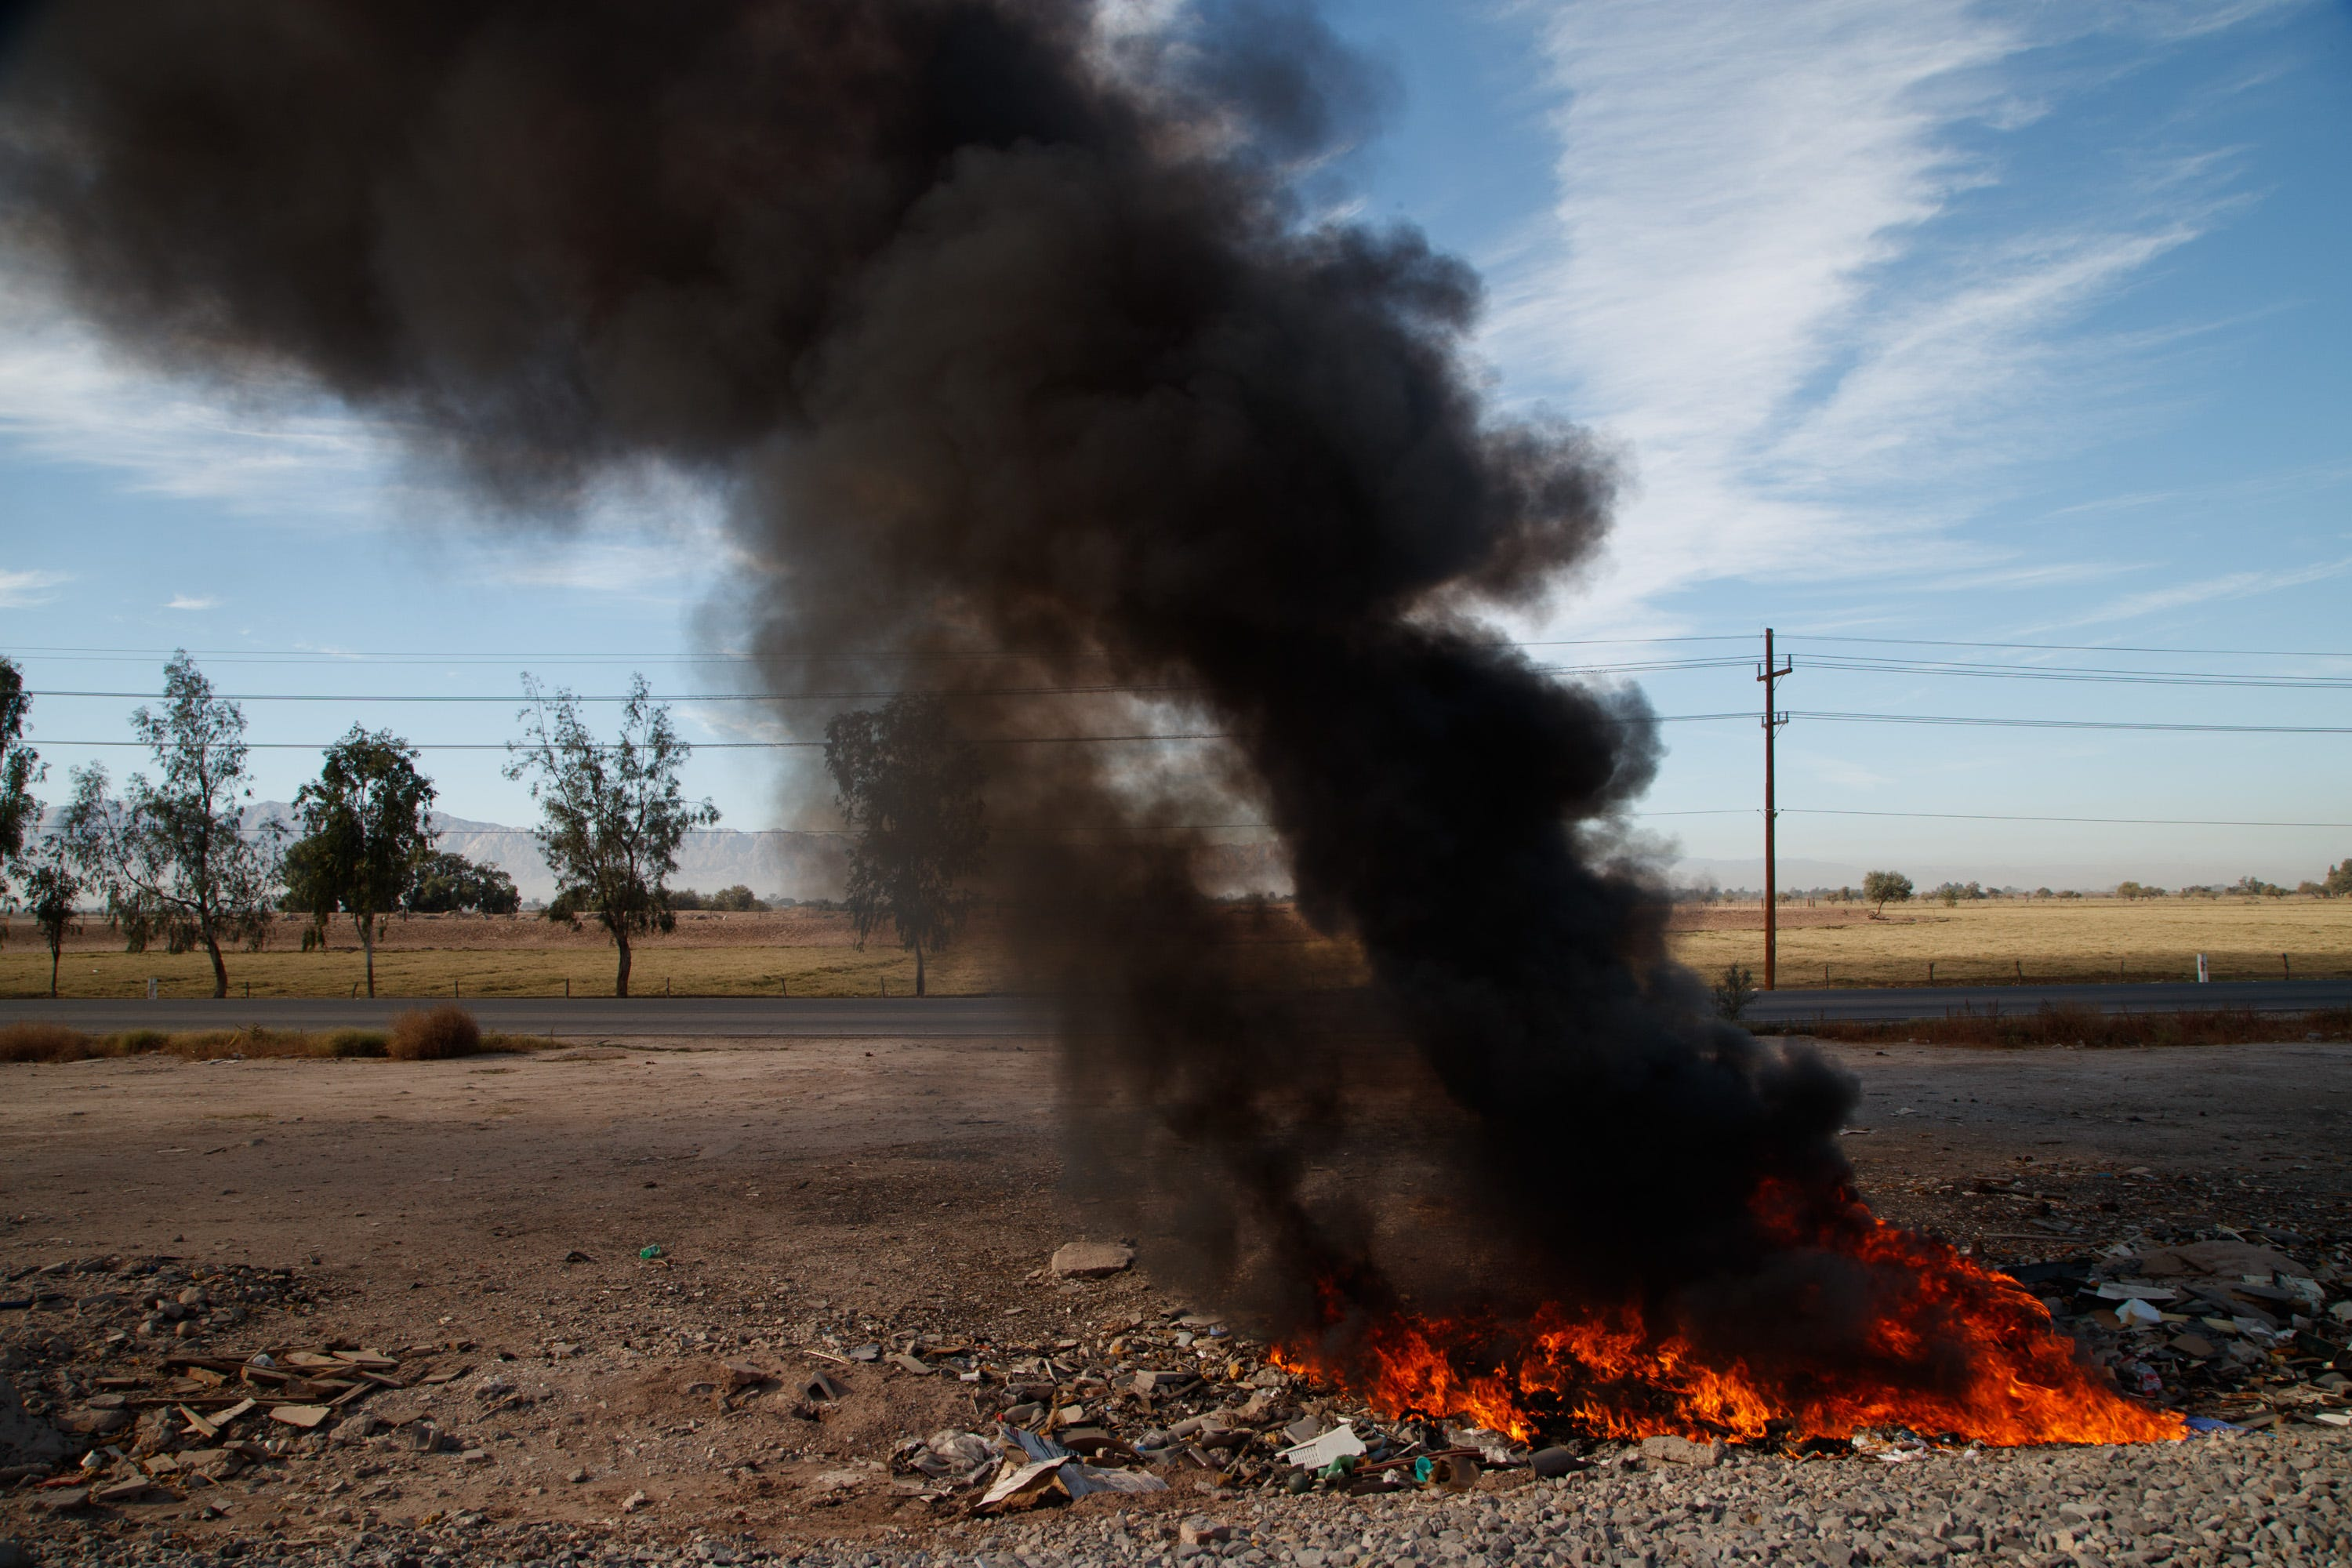 Black smoke billows from a blazing pile of trash in the countryside near Mexicali.